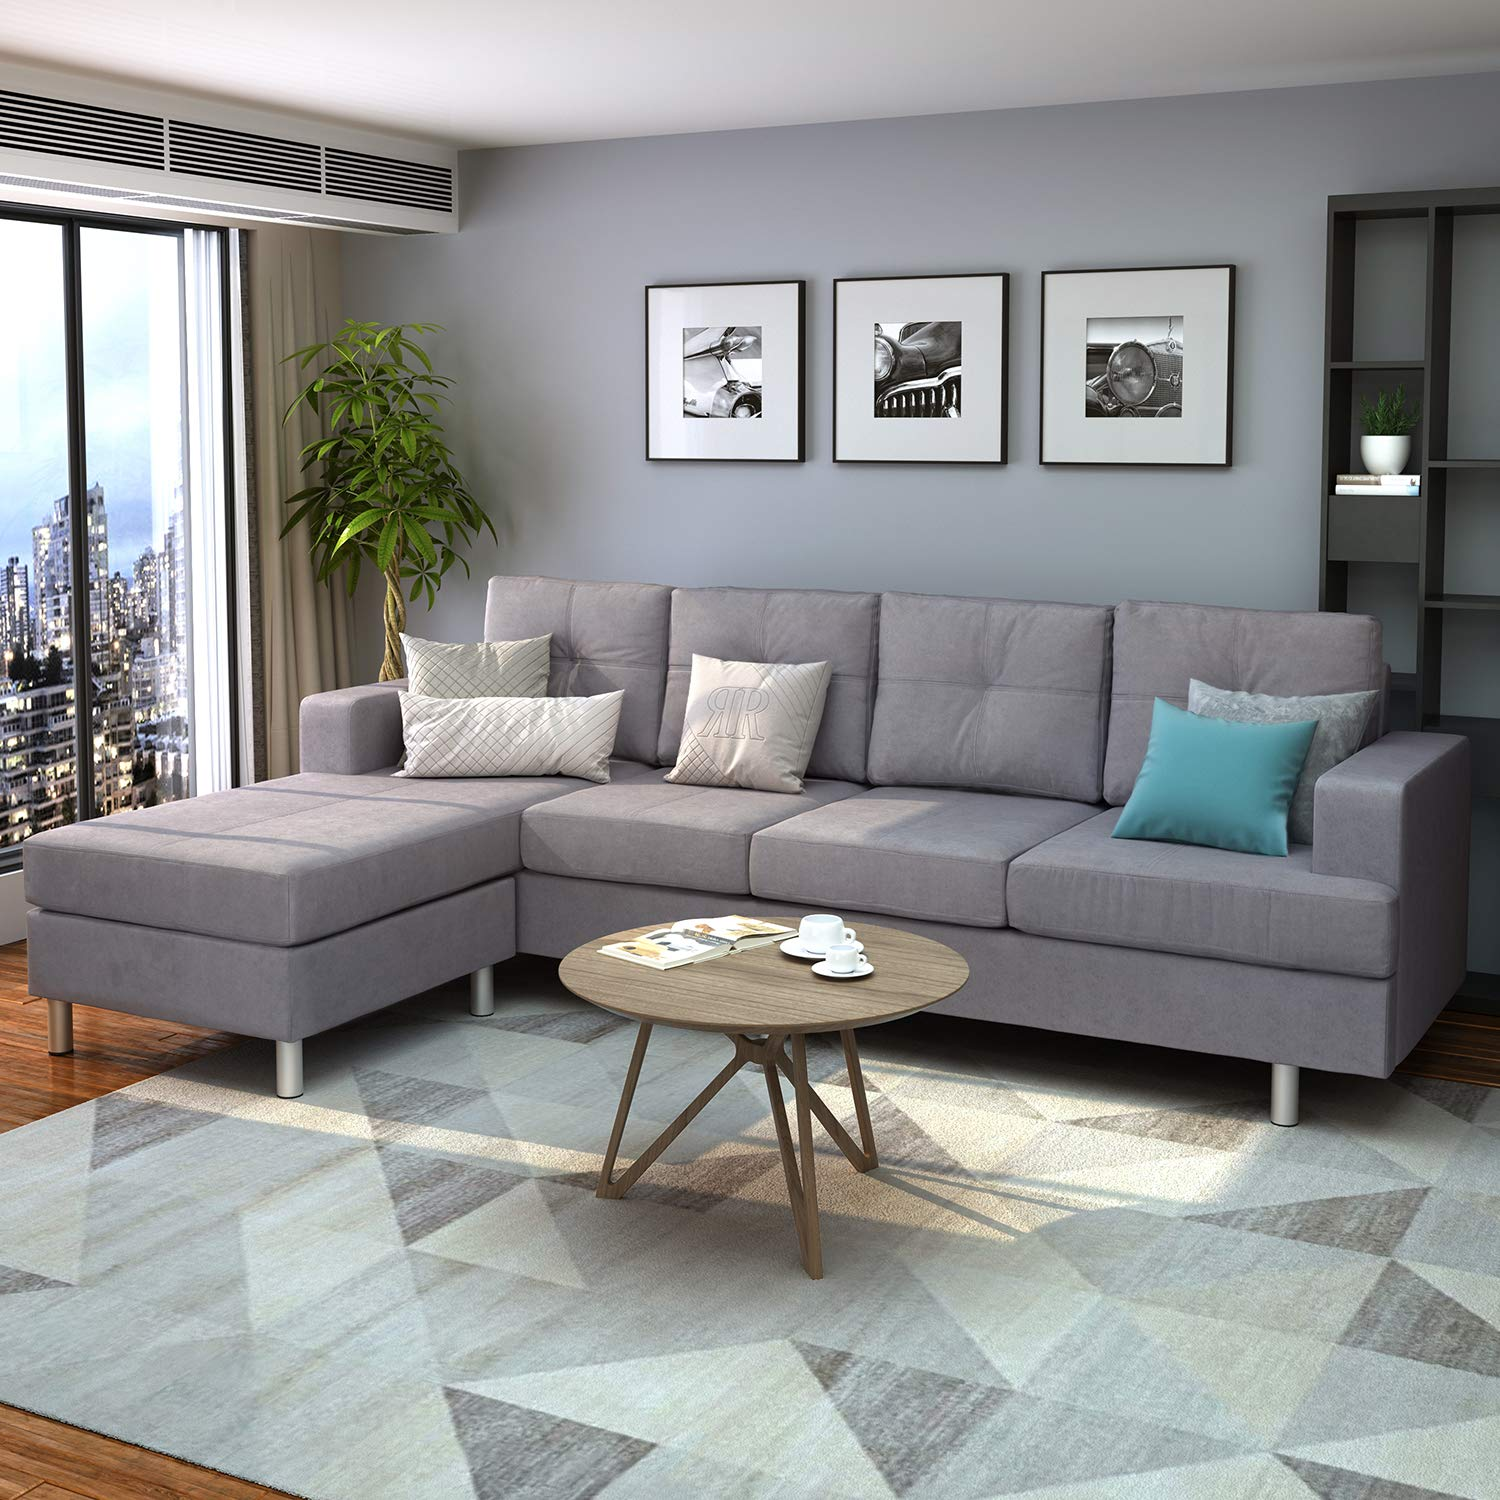 Harper & Bright Designs Modern Sectional Sofa Set with Chaise Lounge for  Living Room L Shape Home Furniture 4 Seat(Grey), Without Storage Ottoman,  ...